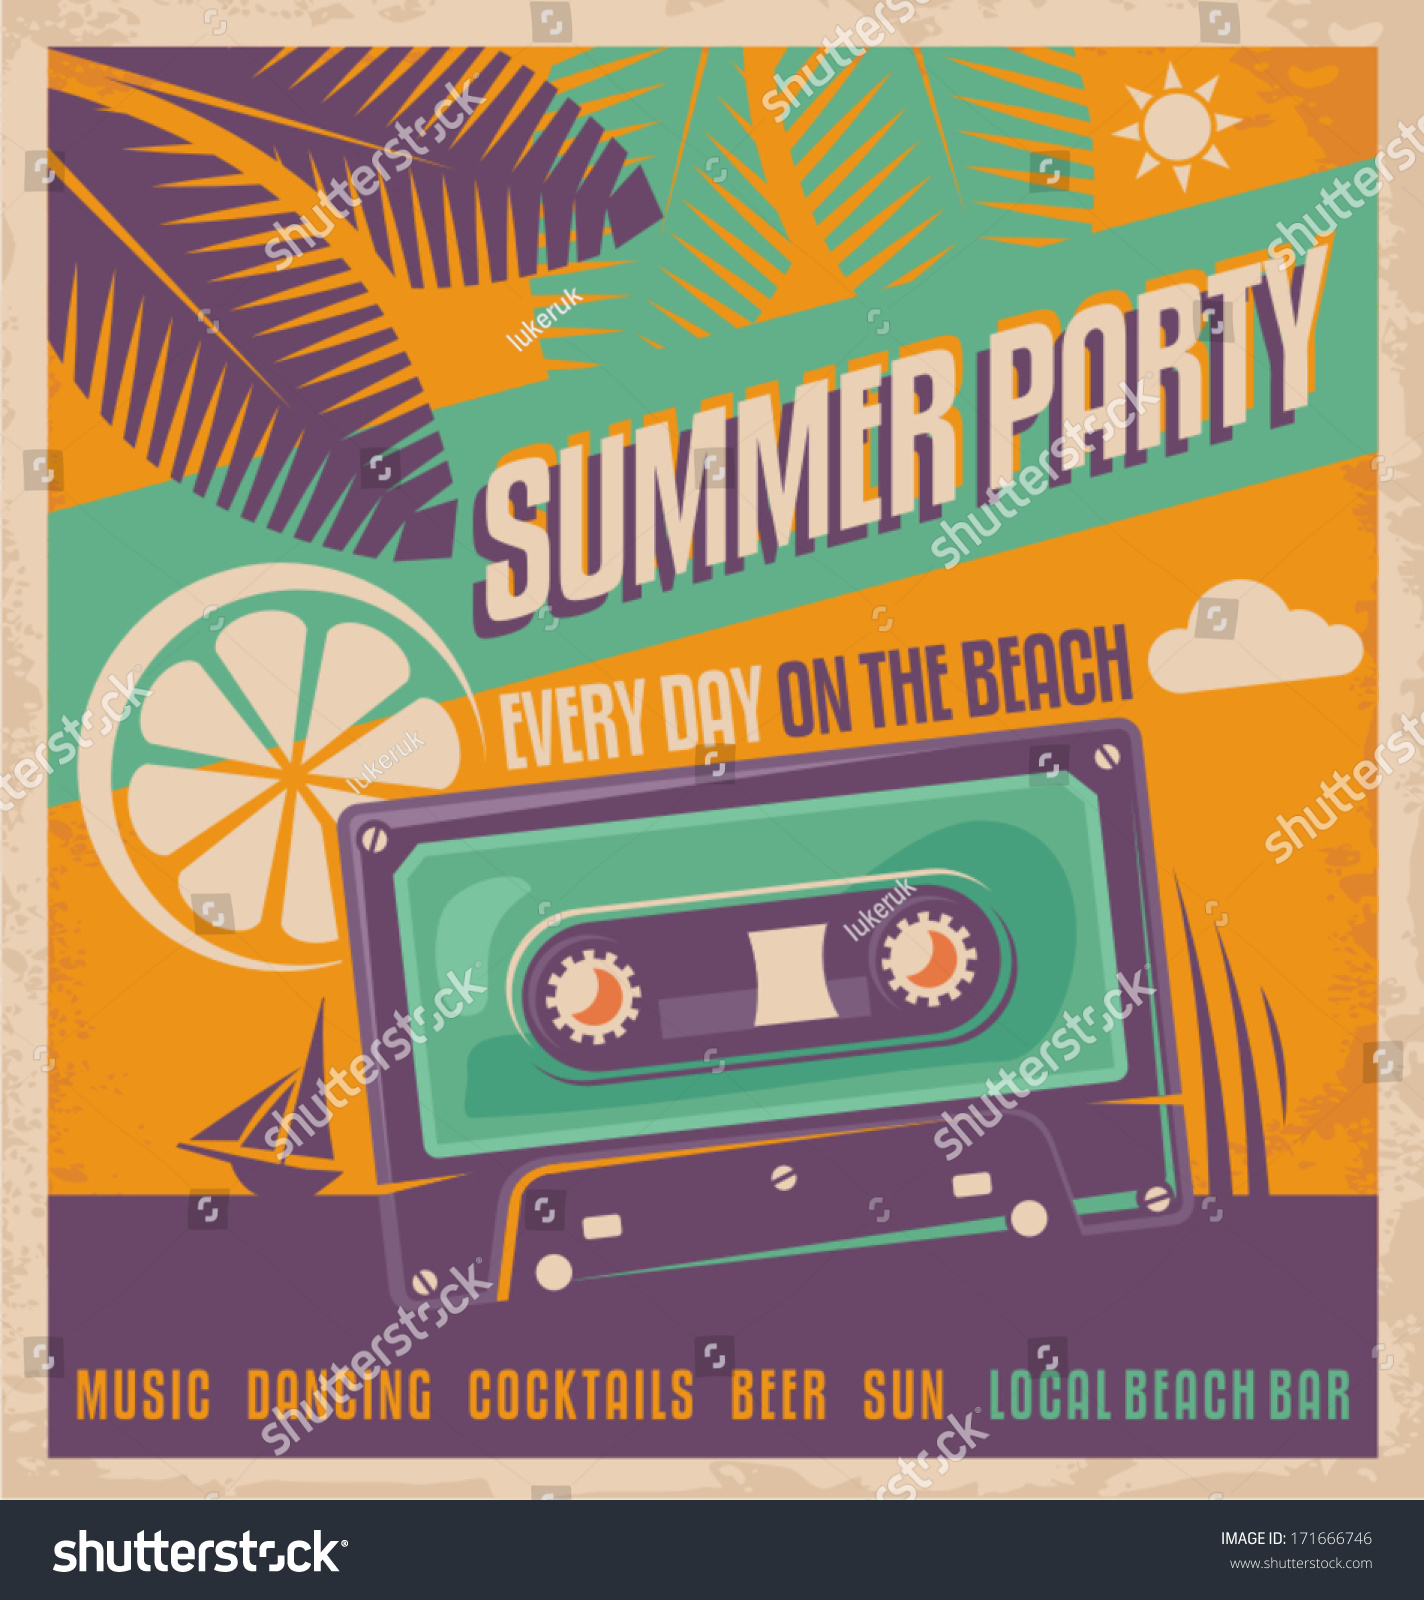 summer party retro poster vector design stock vector  summer party retro poster vector design beach dancing vintage flyer or ad template